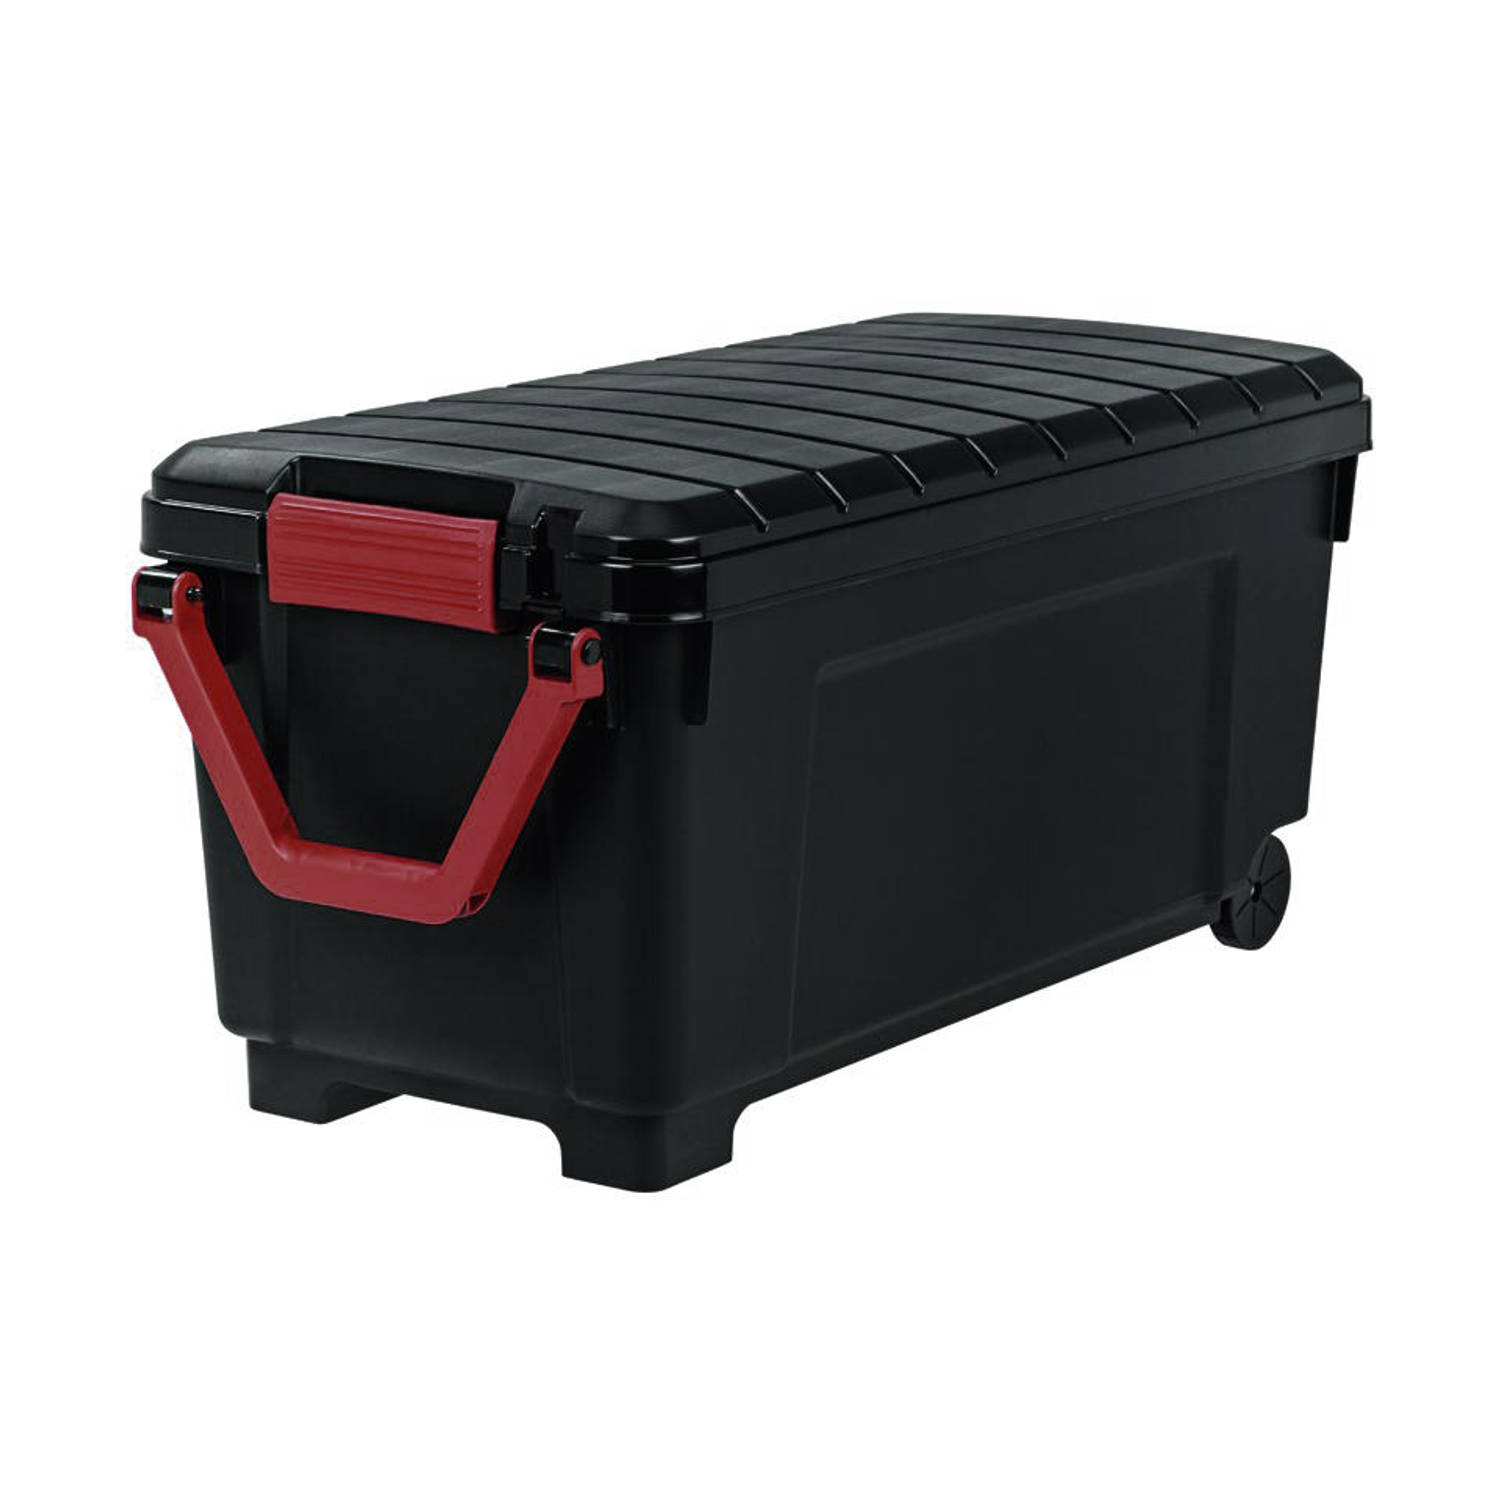 Iris Store It All opbergbox 170 liter zwart rood